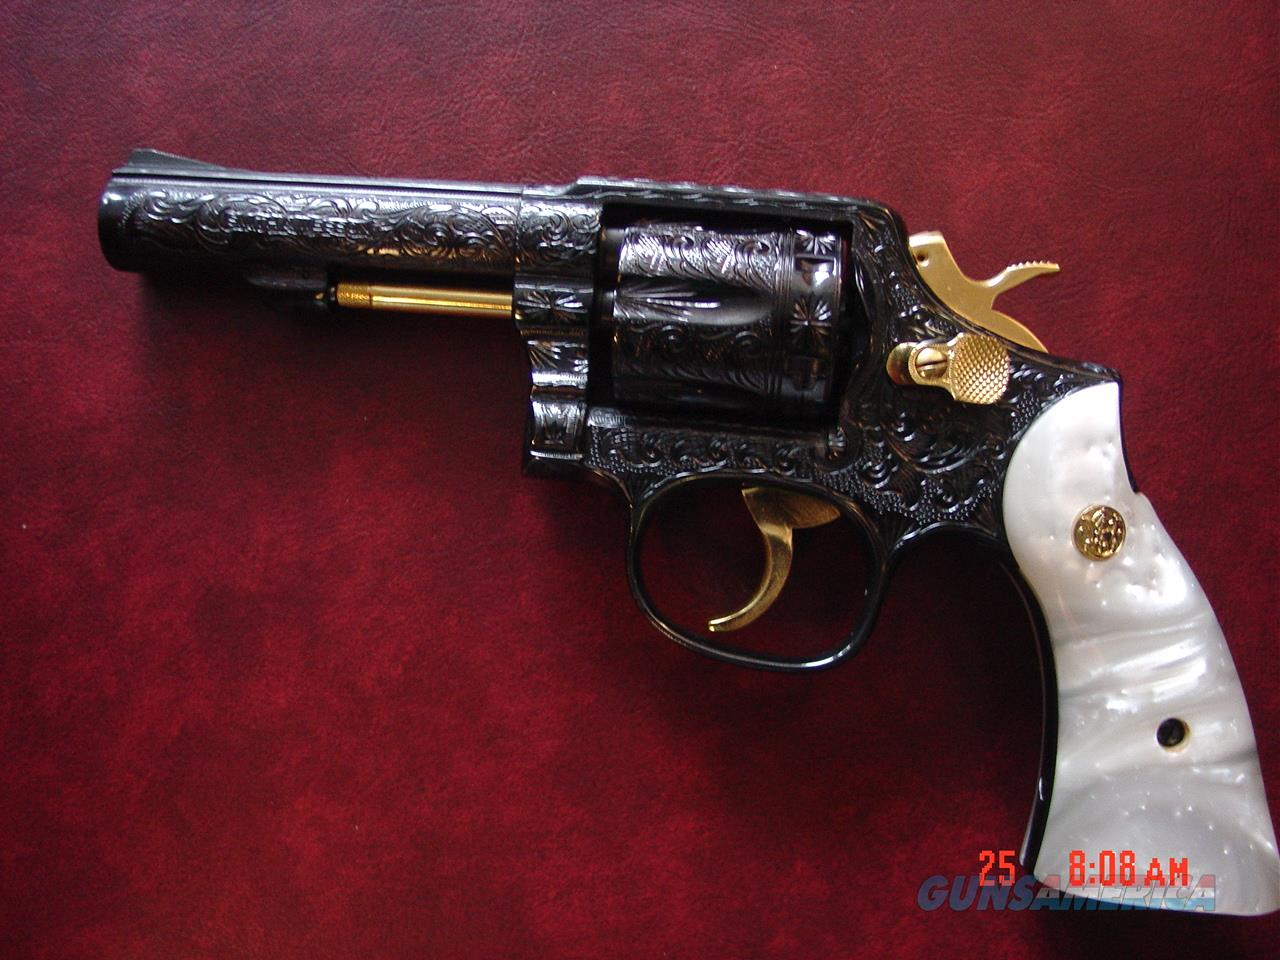 "Smith & Wesson model 10-8,4"",fully hand engraved & refinished in blue with gold,38spl,Pearlite grips,awesome showpiece-nicer in person by Flannery Engraving !!  Guns > Pistols > Smith & Wesson Revolvers > Model 10"